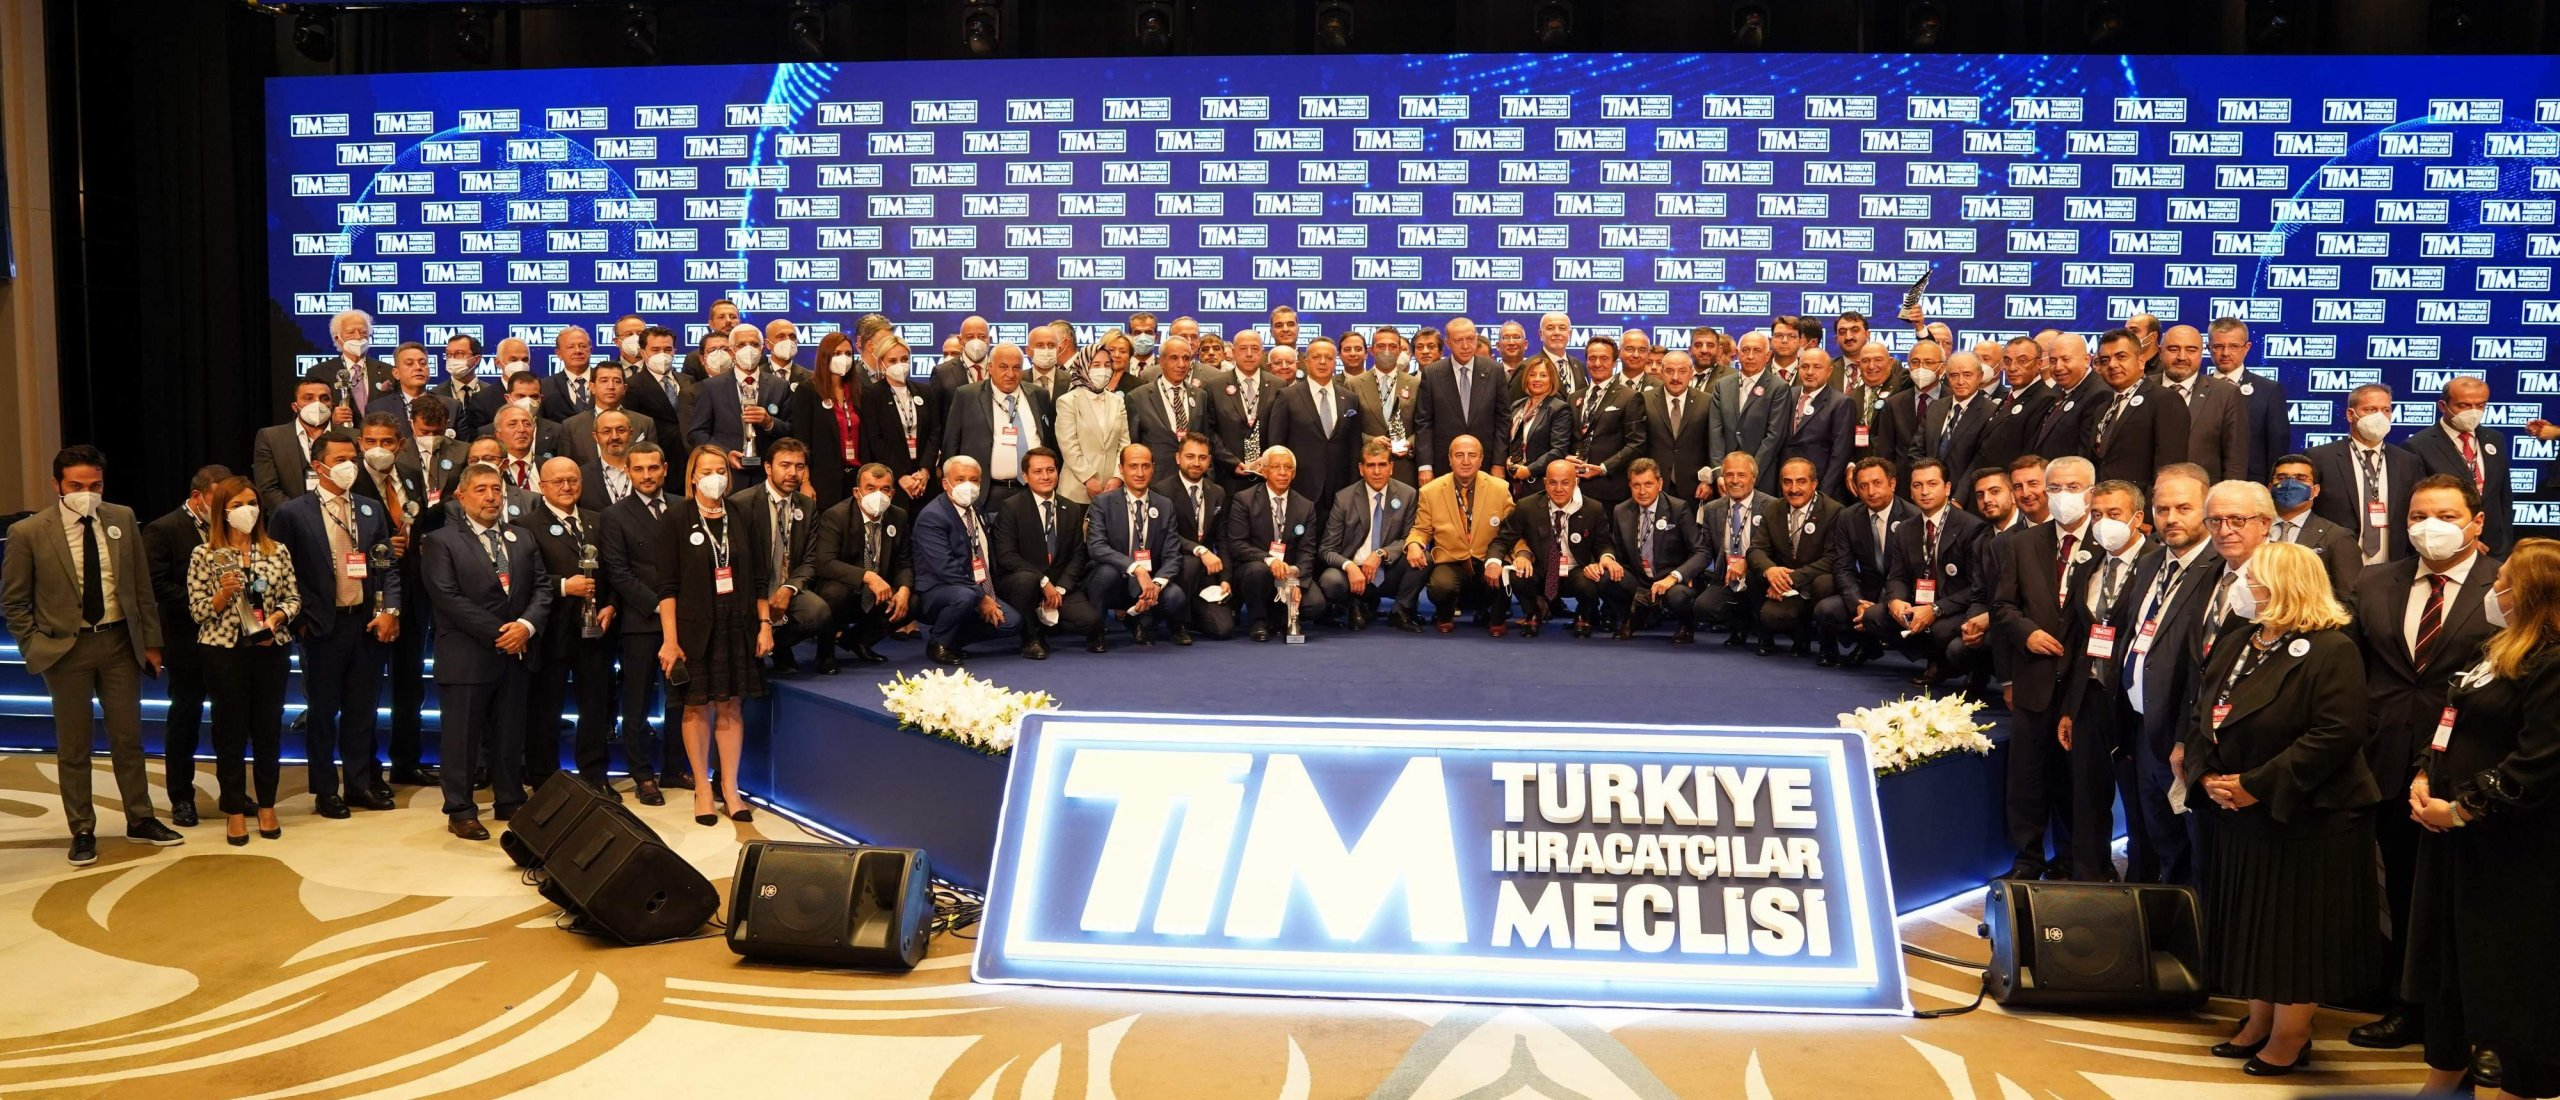 President Recep Tayyip Erdoğan, Cabinet ministers, Turkish Exporters Assemby (TIM) officials and representatives of top exporters companies pose for a photo during the TIM's 28th general assembly and 2020 Export Champions award ceremony in Istanbul, Turkey, Sept. 18, 2021. (DHA Photo)